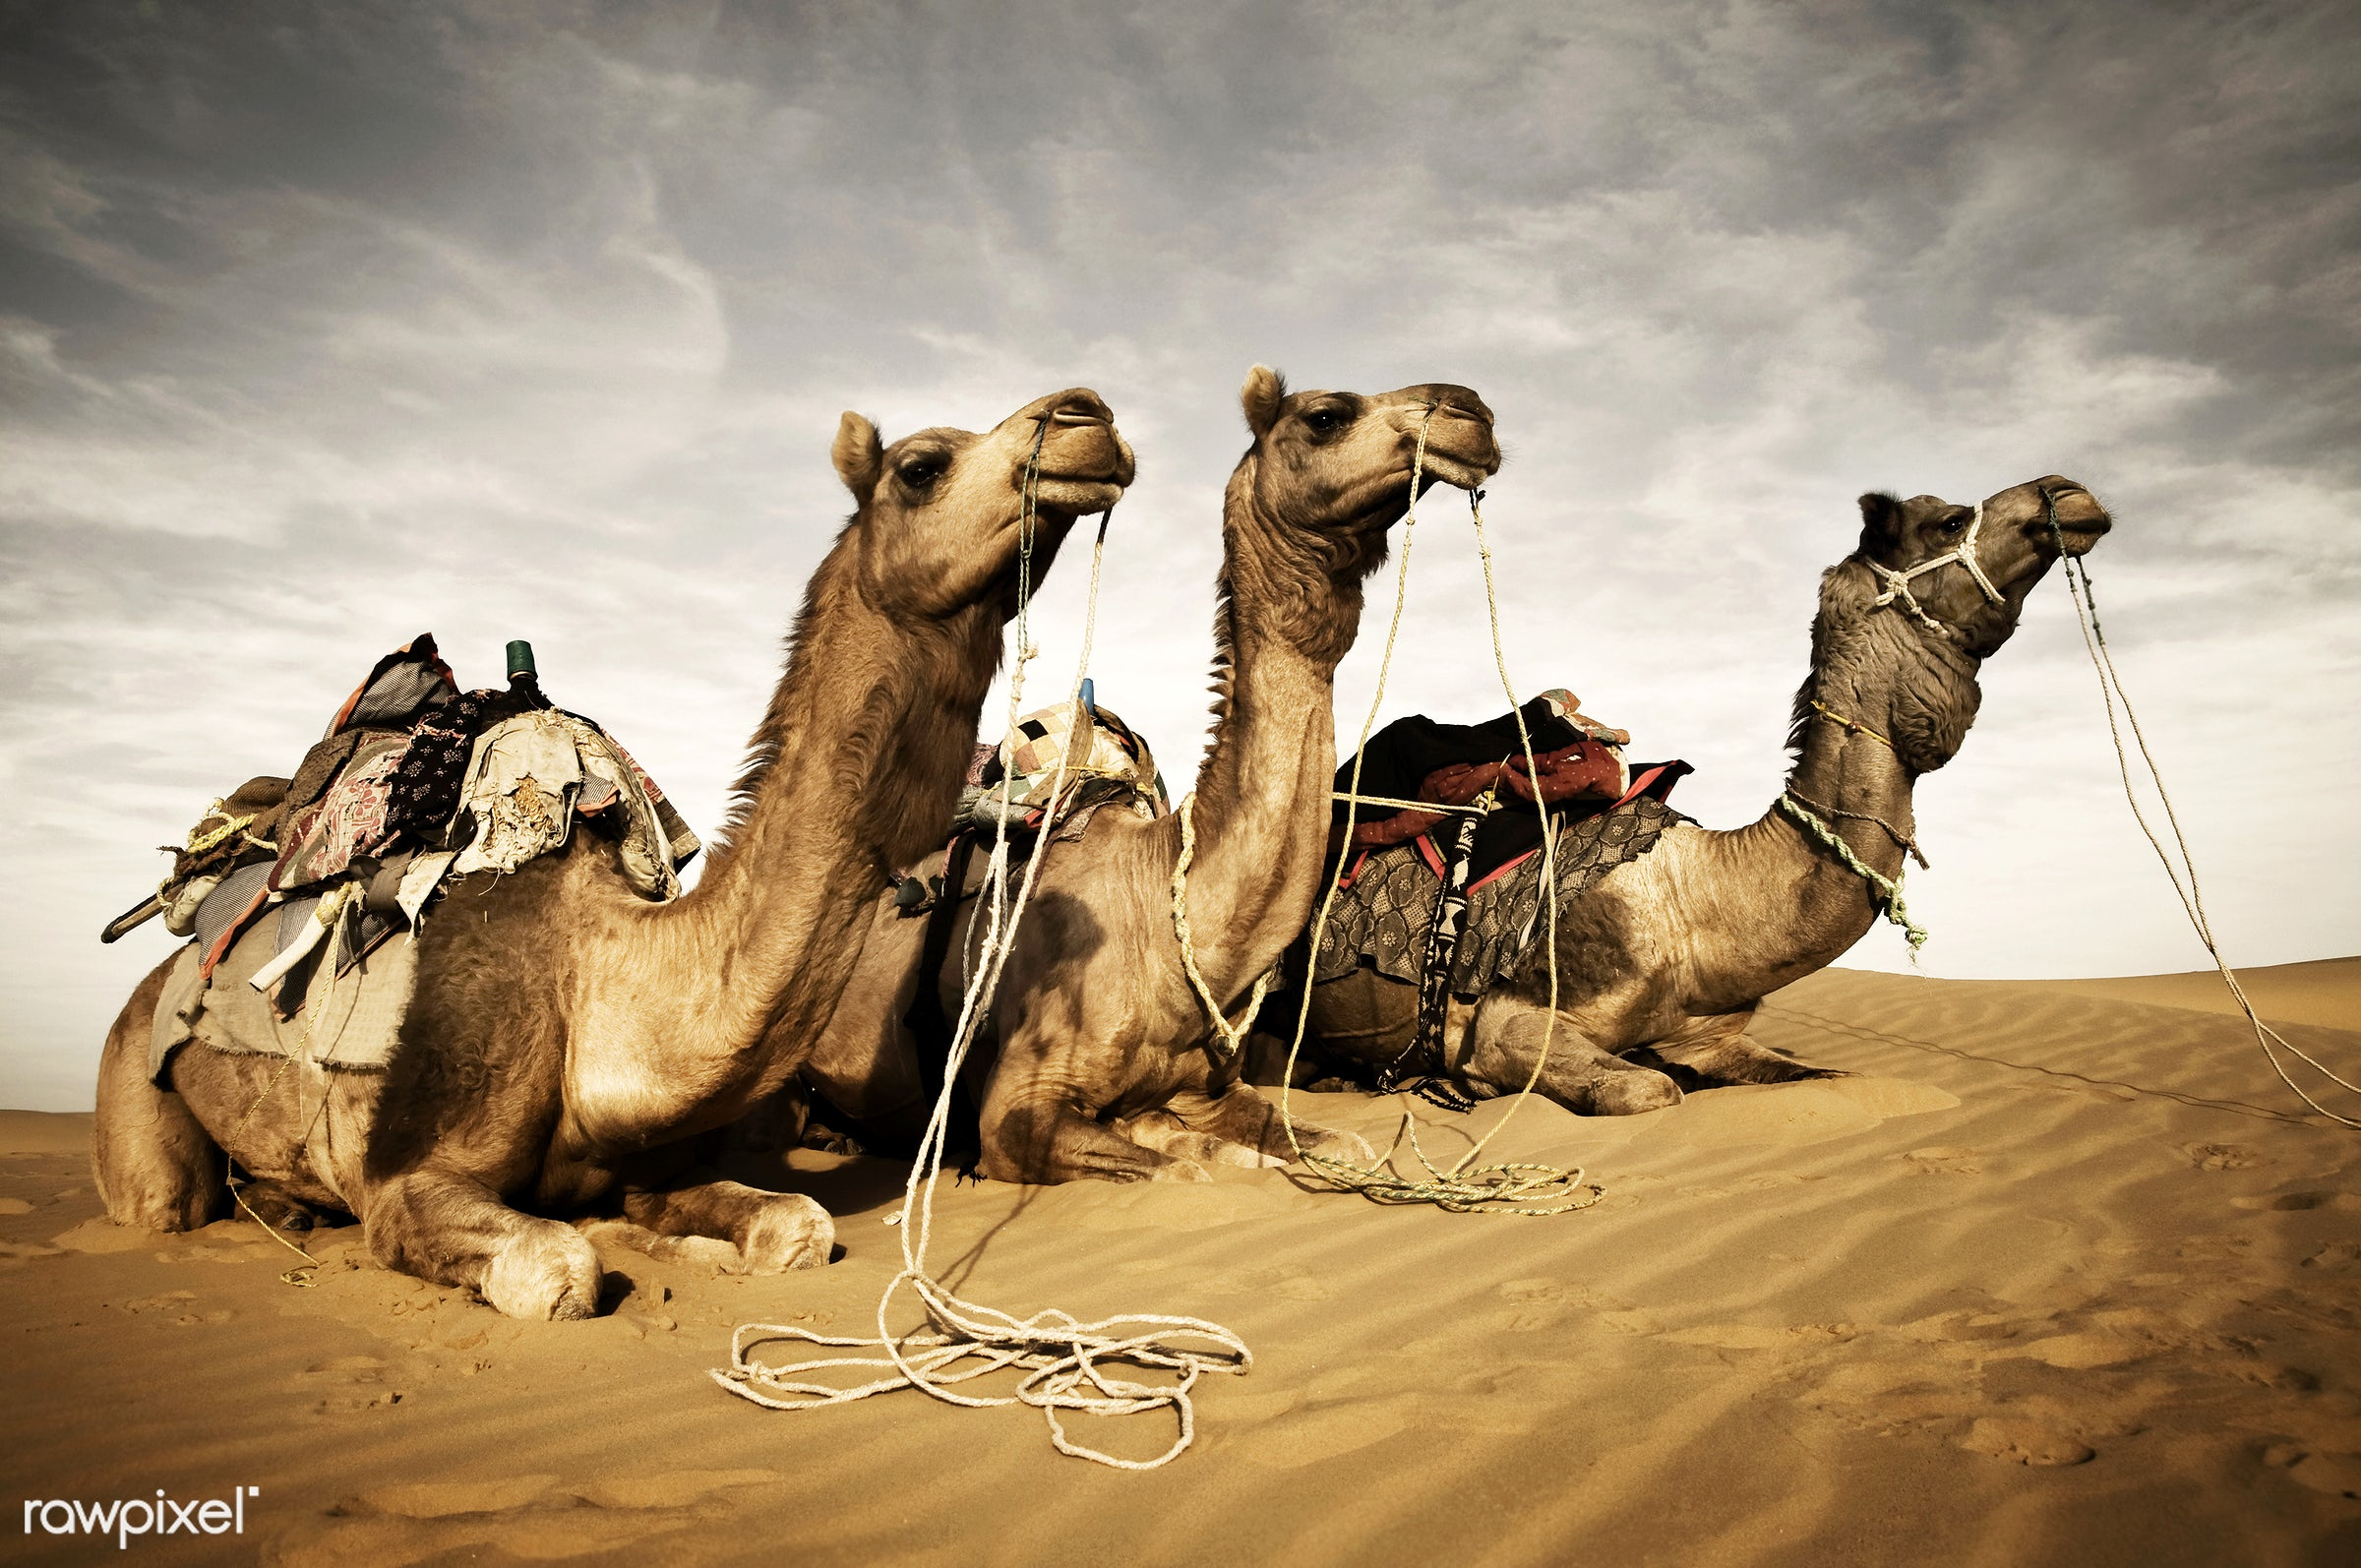 Camels resting in the Thar desert, Rajasthan, India - animal, camel, travel, ancient, animal themes, arabia, carved letters...